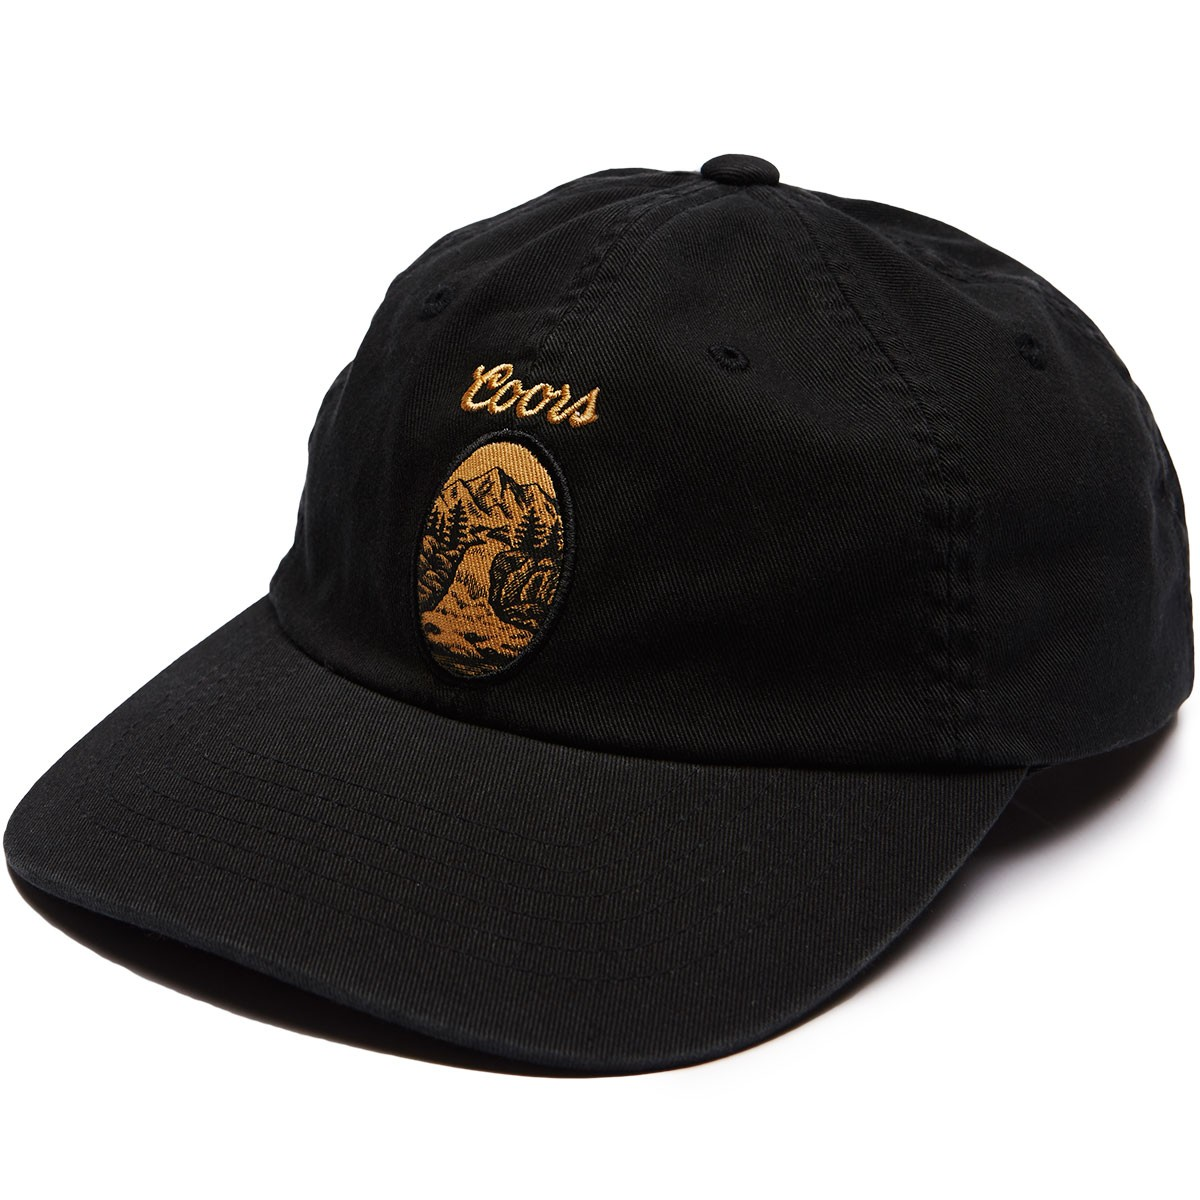 Brixton X Coors Filtered Hat - Black 0293a4b1671